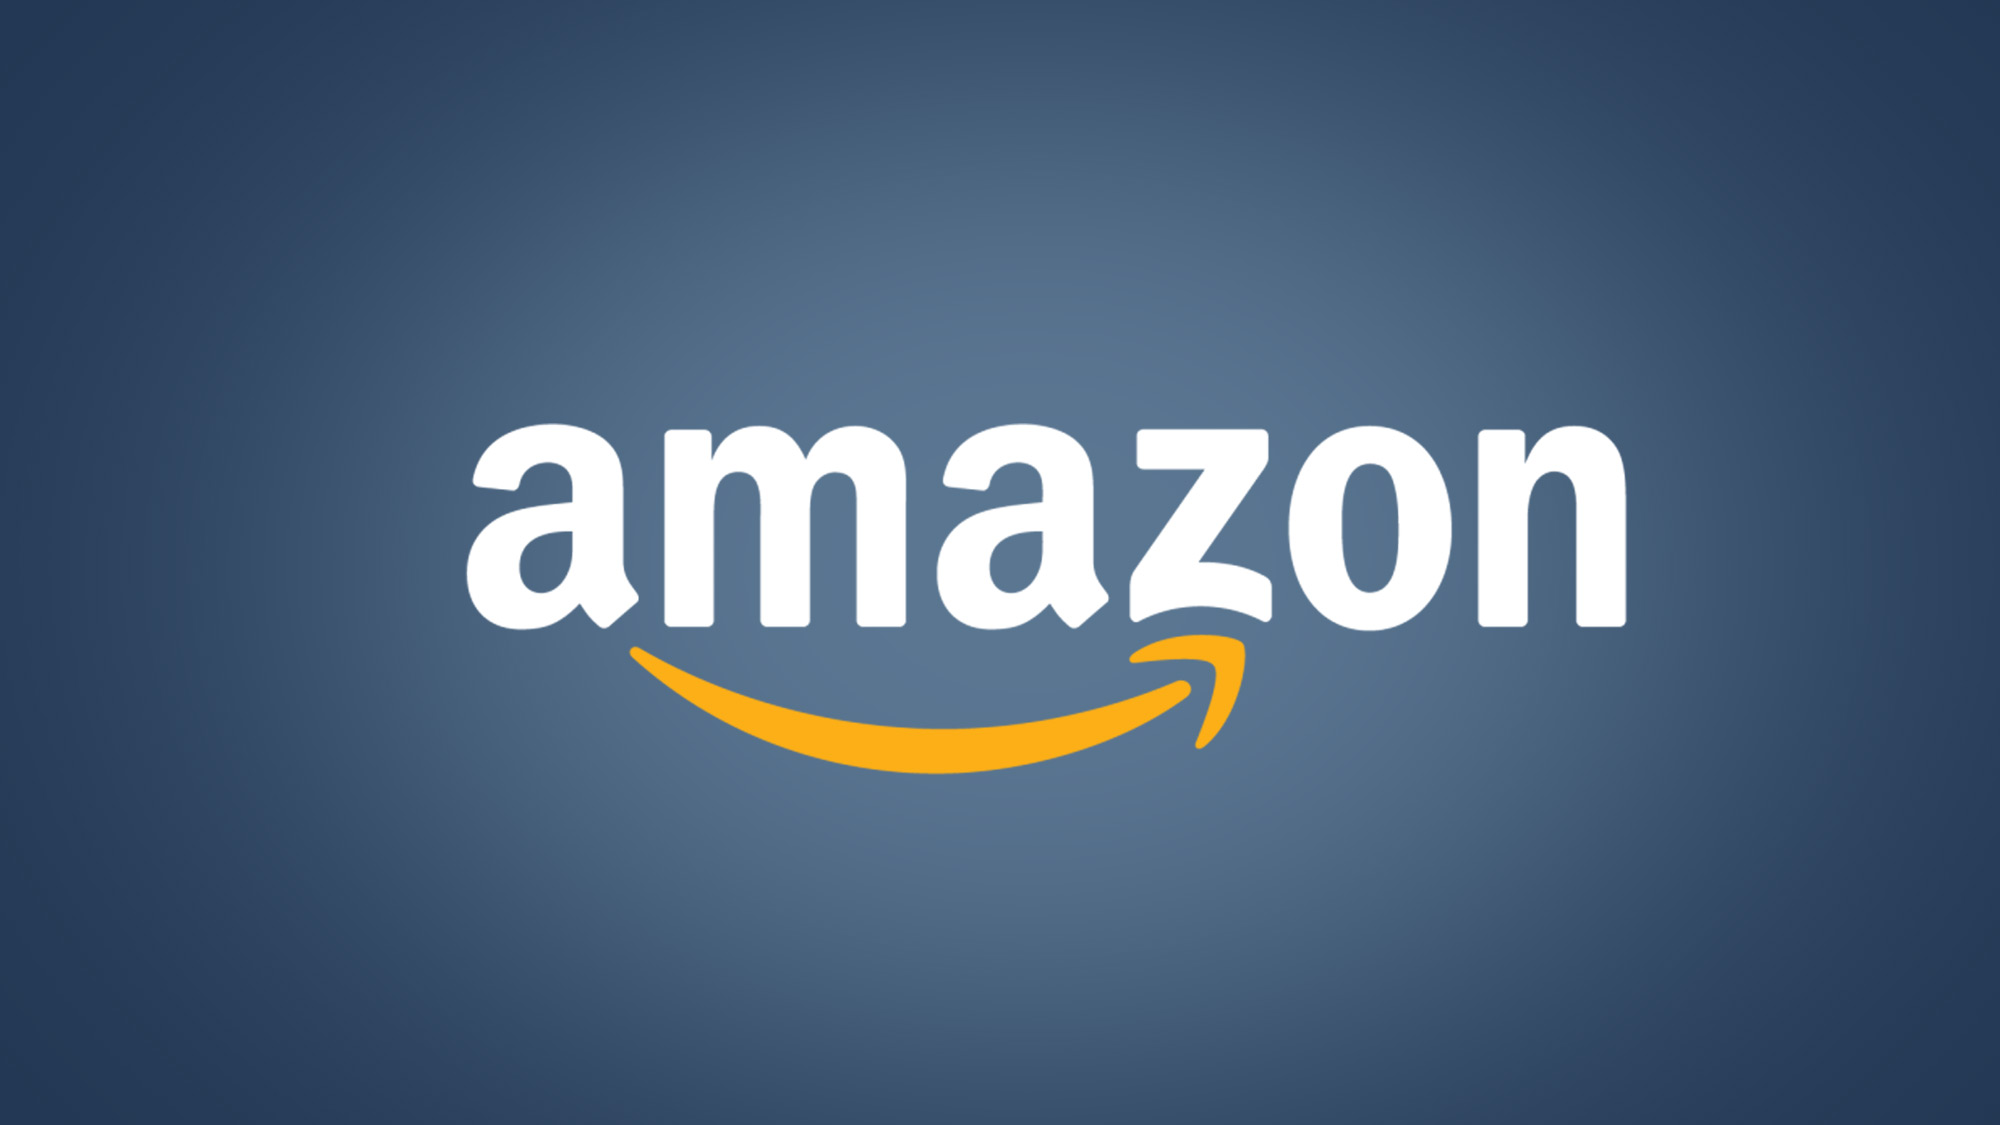 Learn How to Apply for an Amazon Credit Card Online